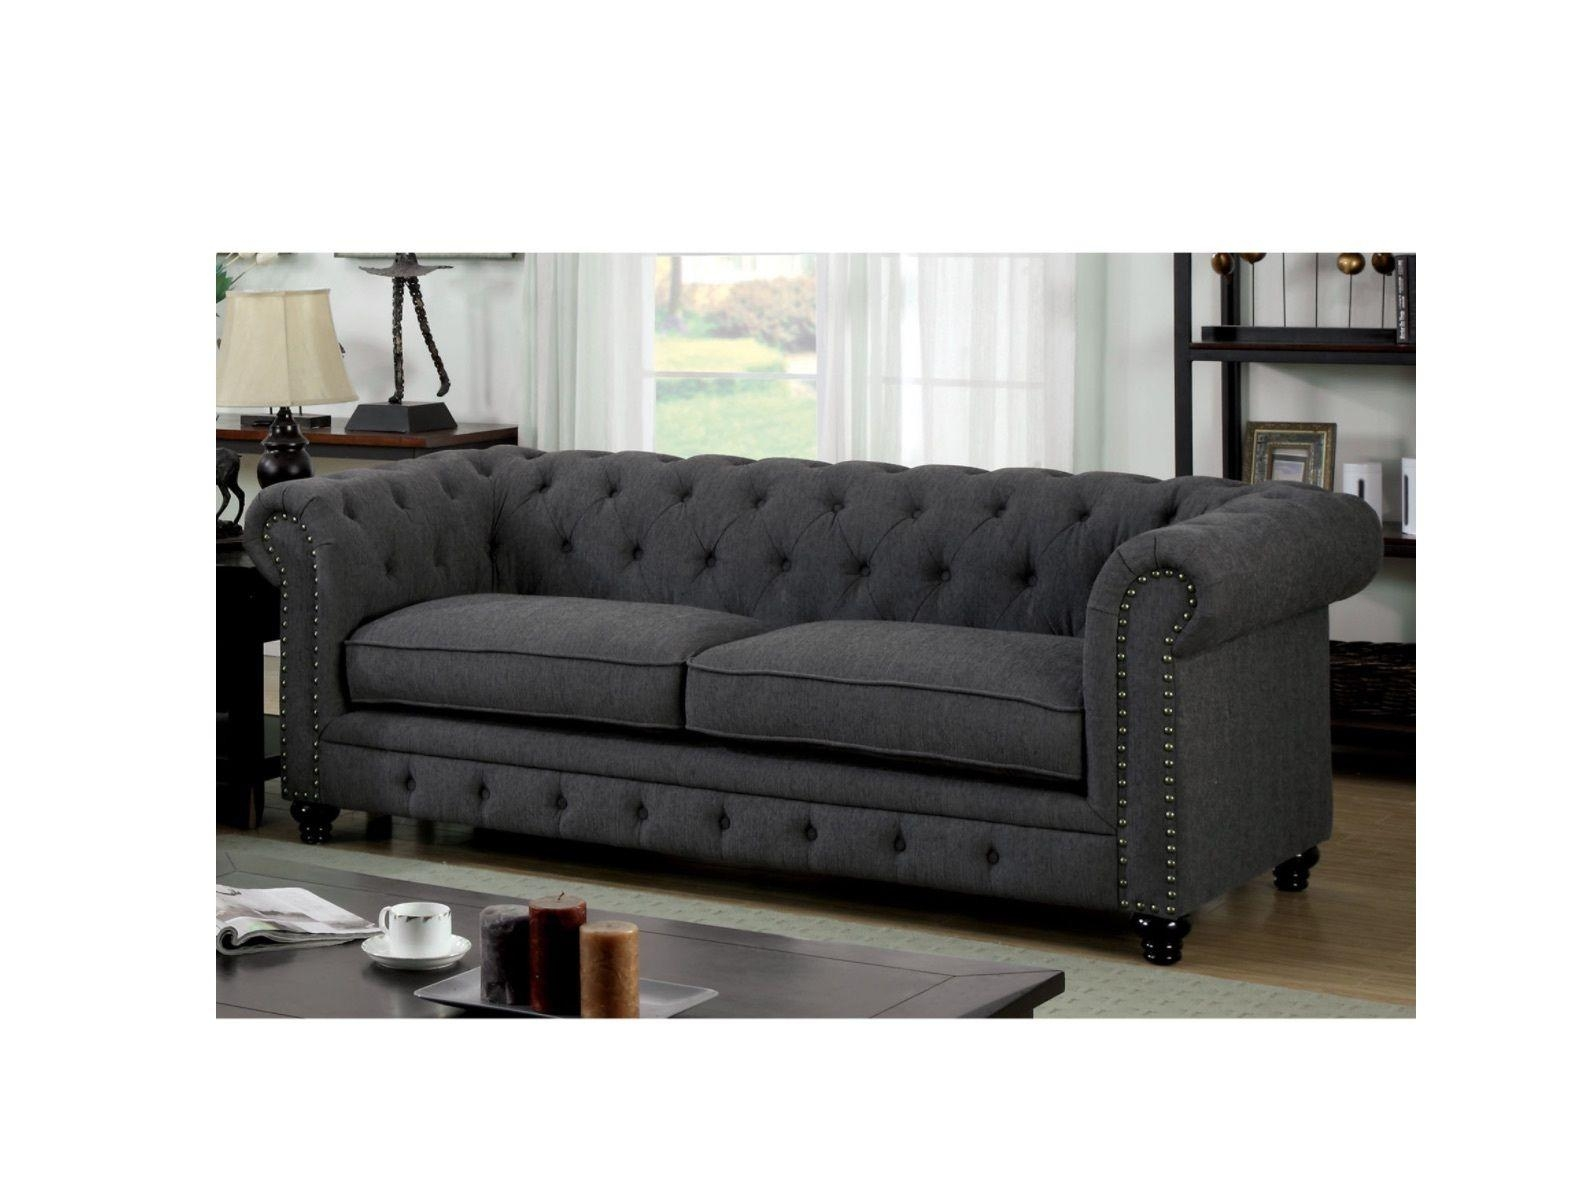 Affordable Sofas | Tehranmix Decoration With Big Comfy Sofas (Image 2 of 25)